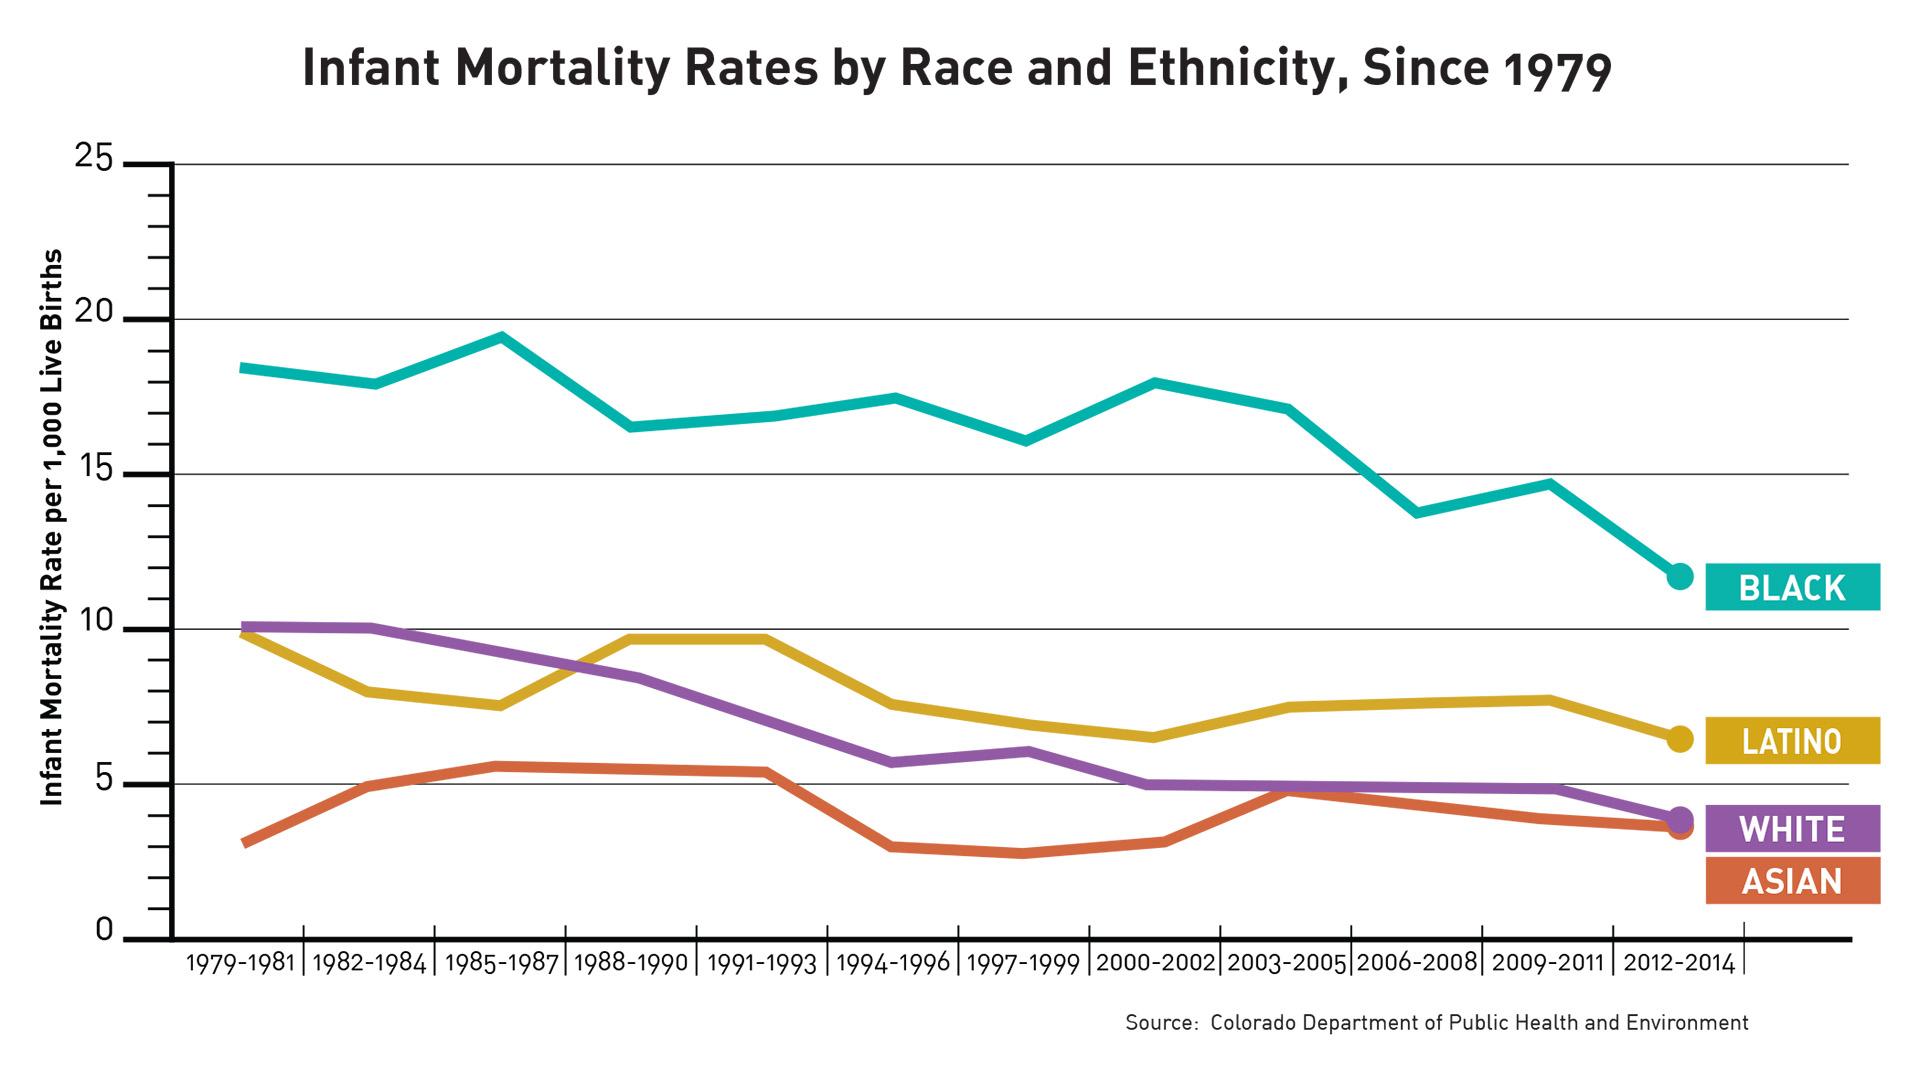 Infant Mortality Rate for Race and Ethnicity